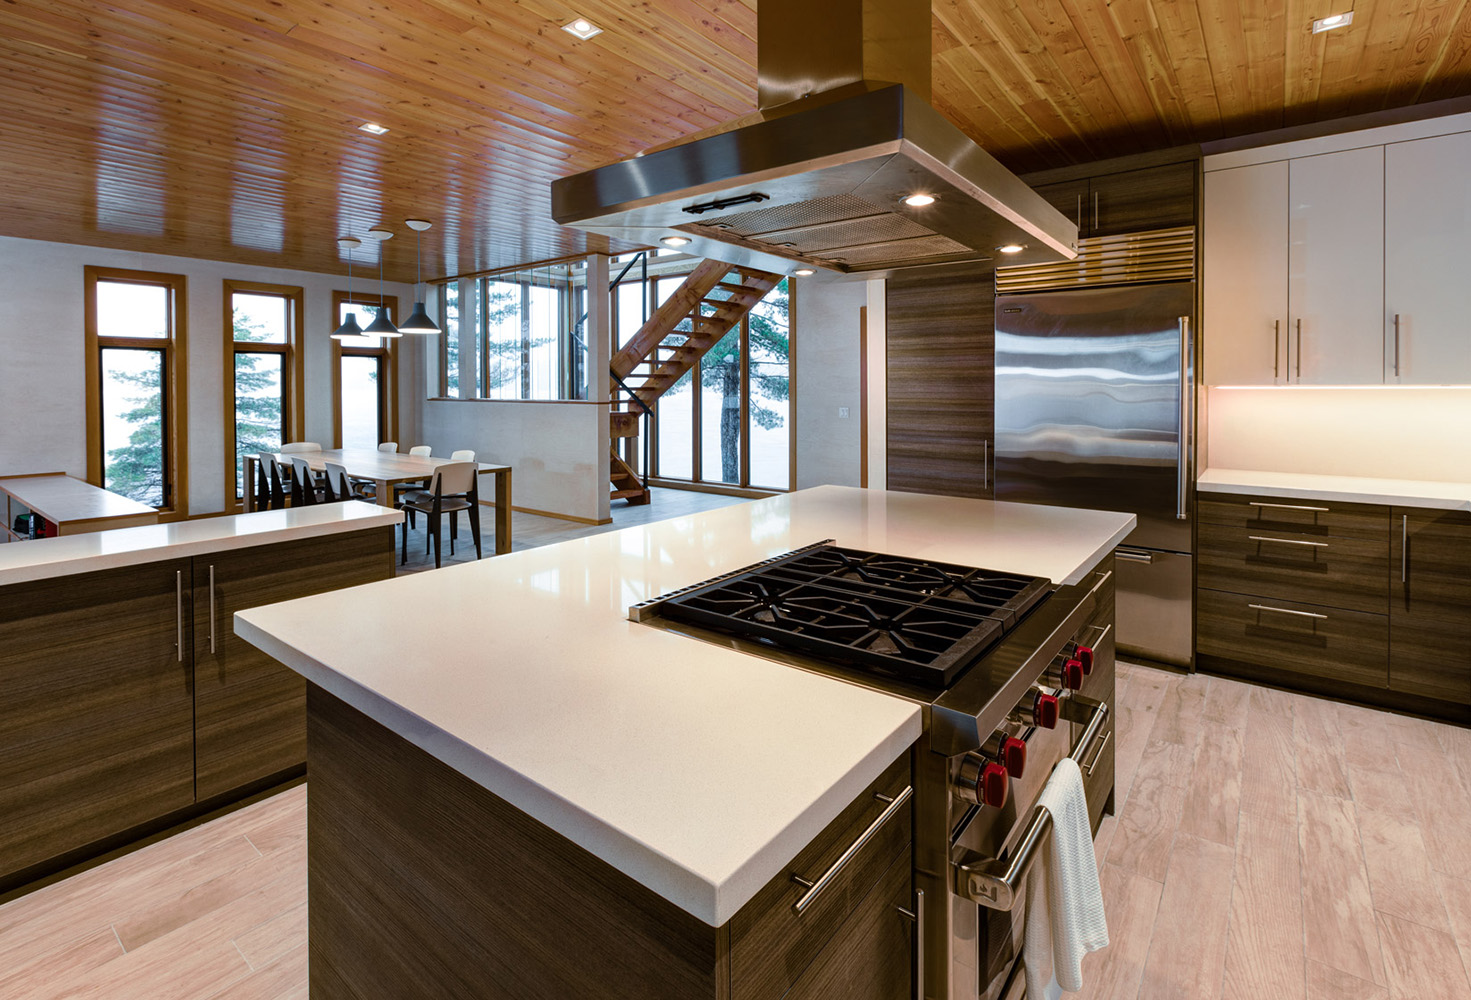 Modern cottage kitchen with stainless steel Gas range and Vent hood, quartz countertops, custom cabinetry